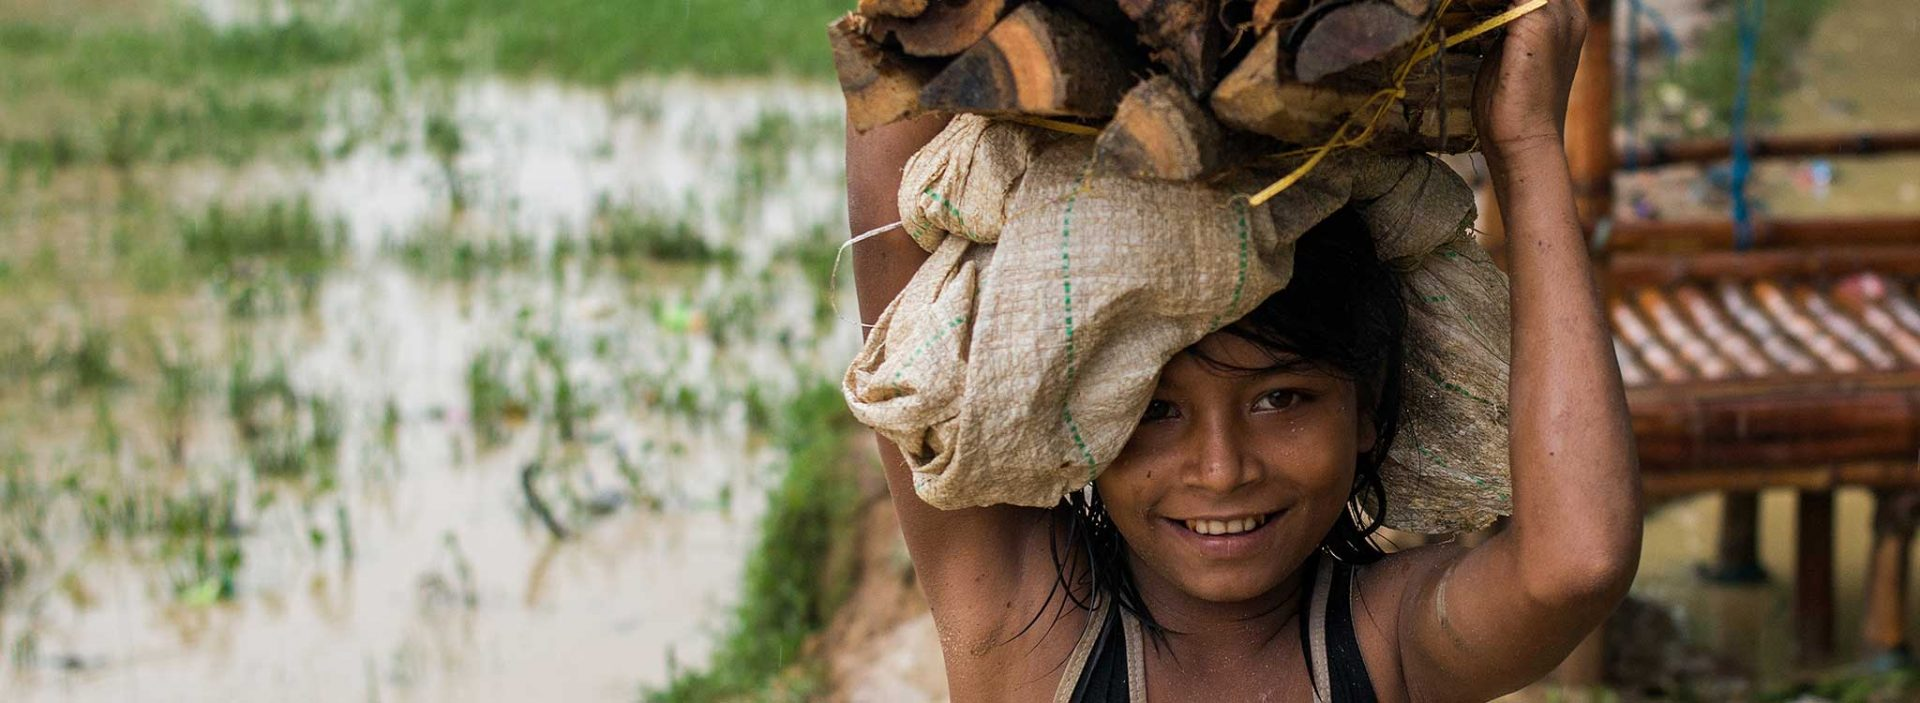 A Rohingya refugee from Myanmar helped by Action Against Hunger carries some wood.